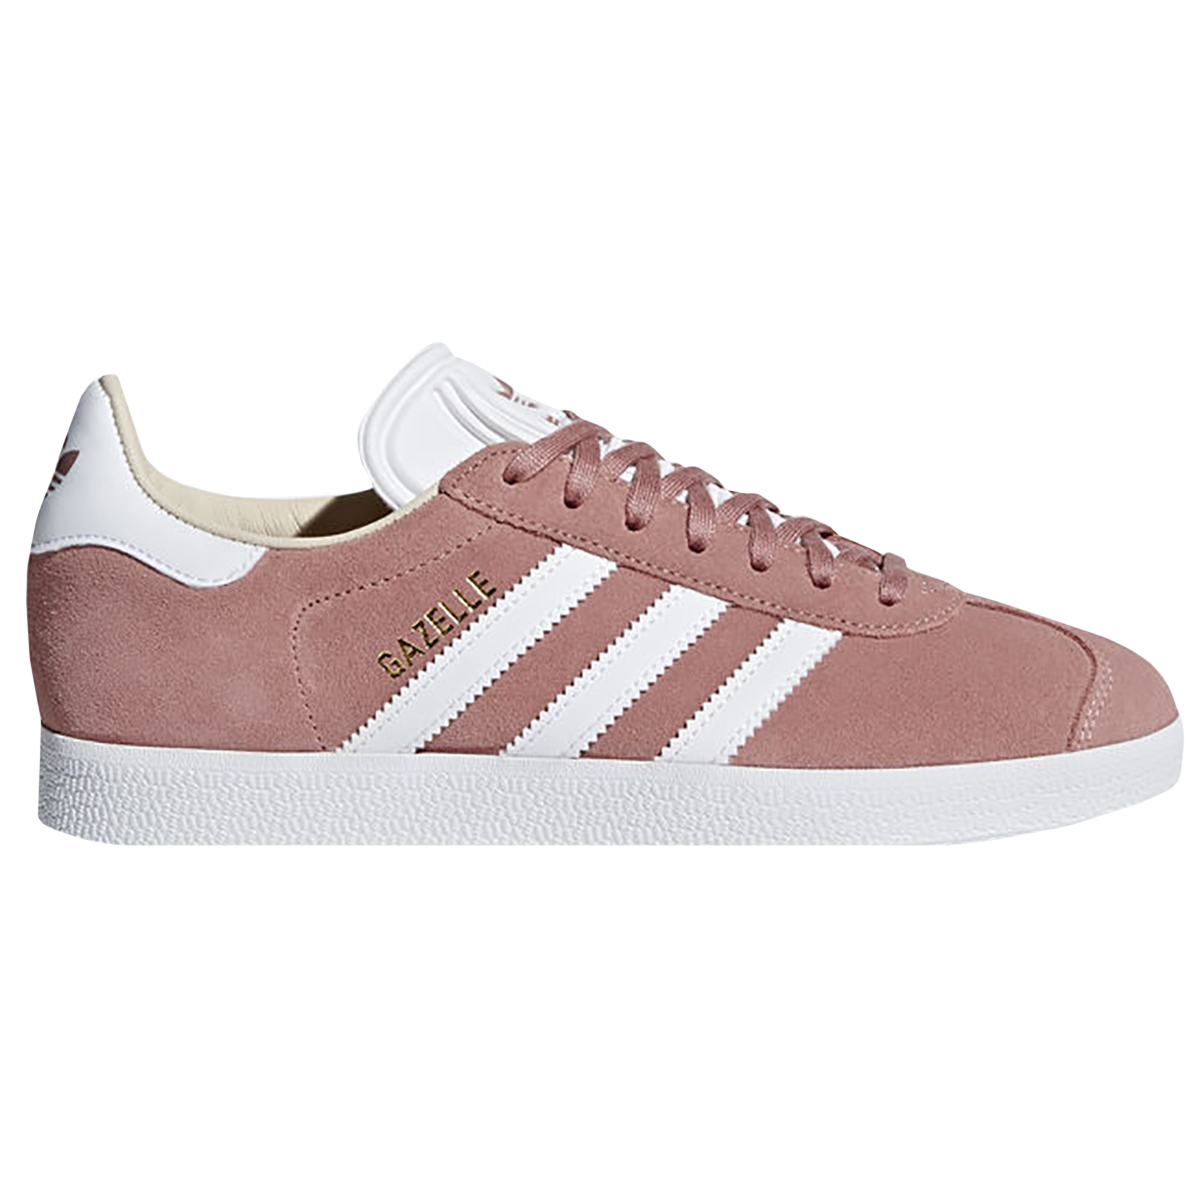 Adidas Women's Gazelle OrthoLite Suede Casual Shoes - 7 - Ash Pearl  Pink/White